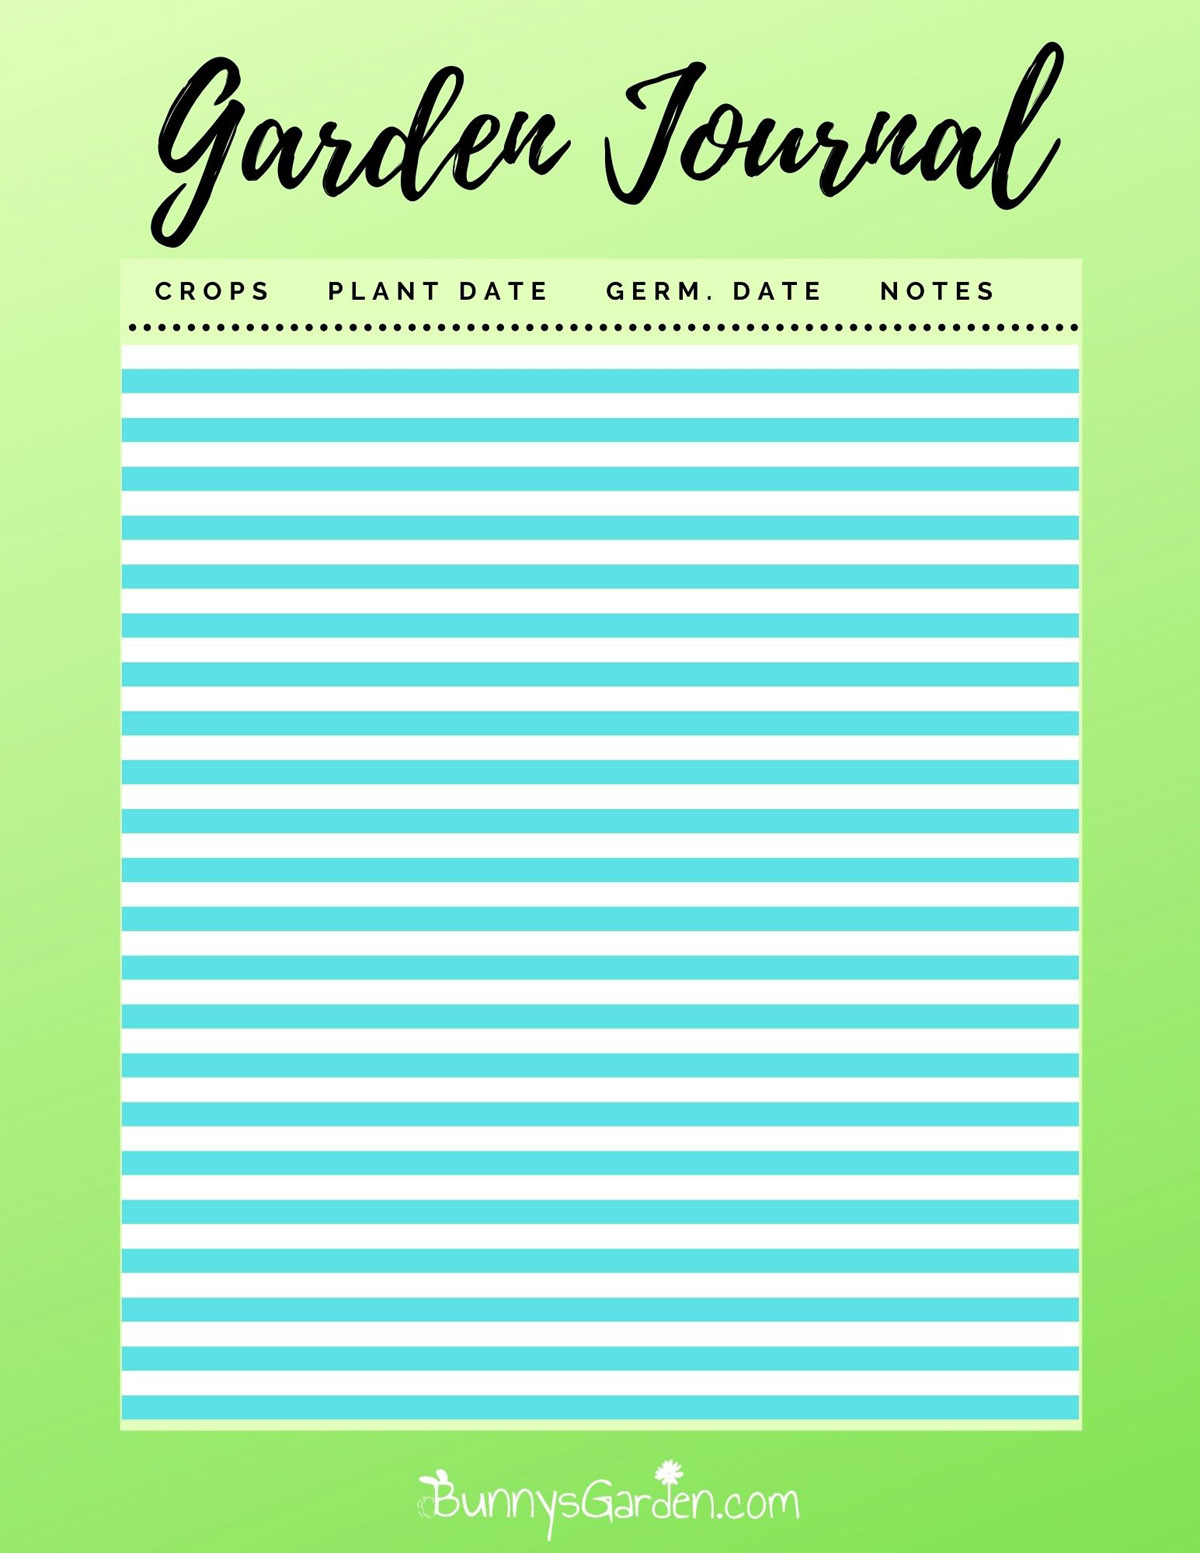 Free Printable Garden Journal Pages - Planting Dates and Germination Notes